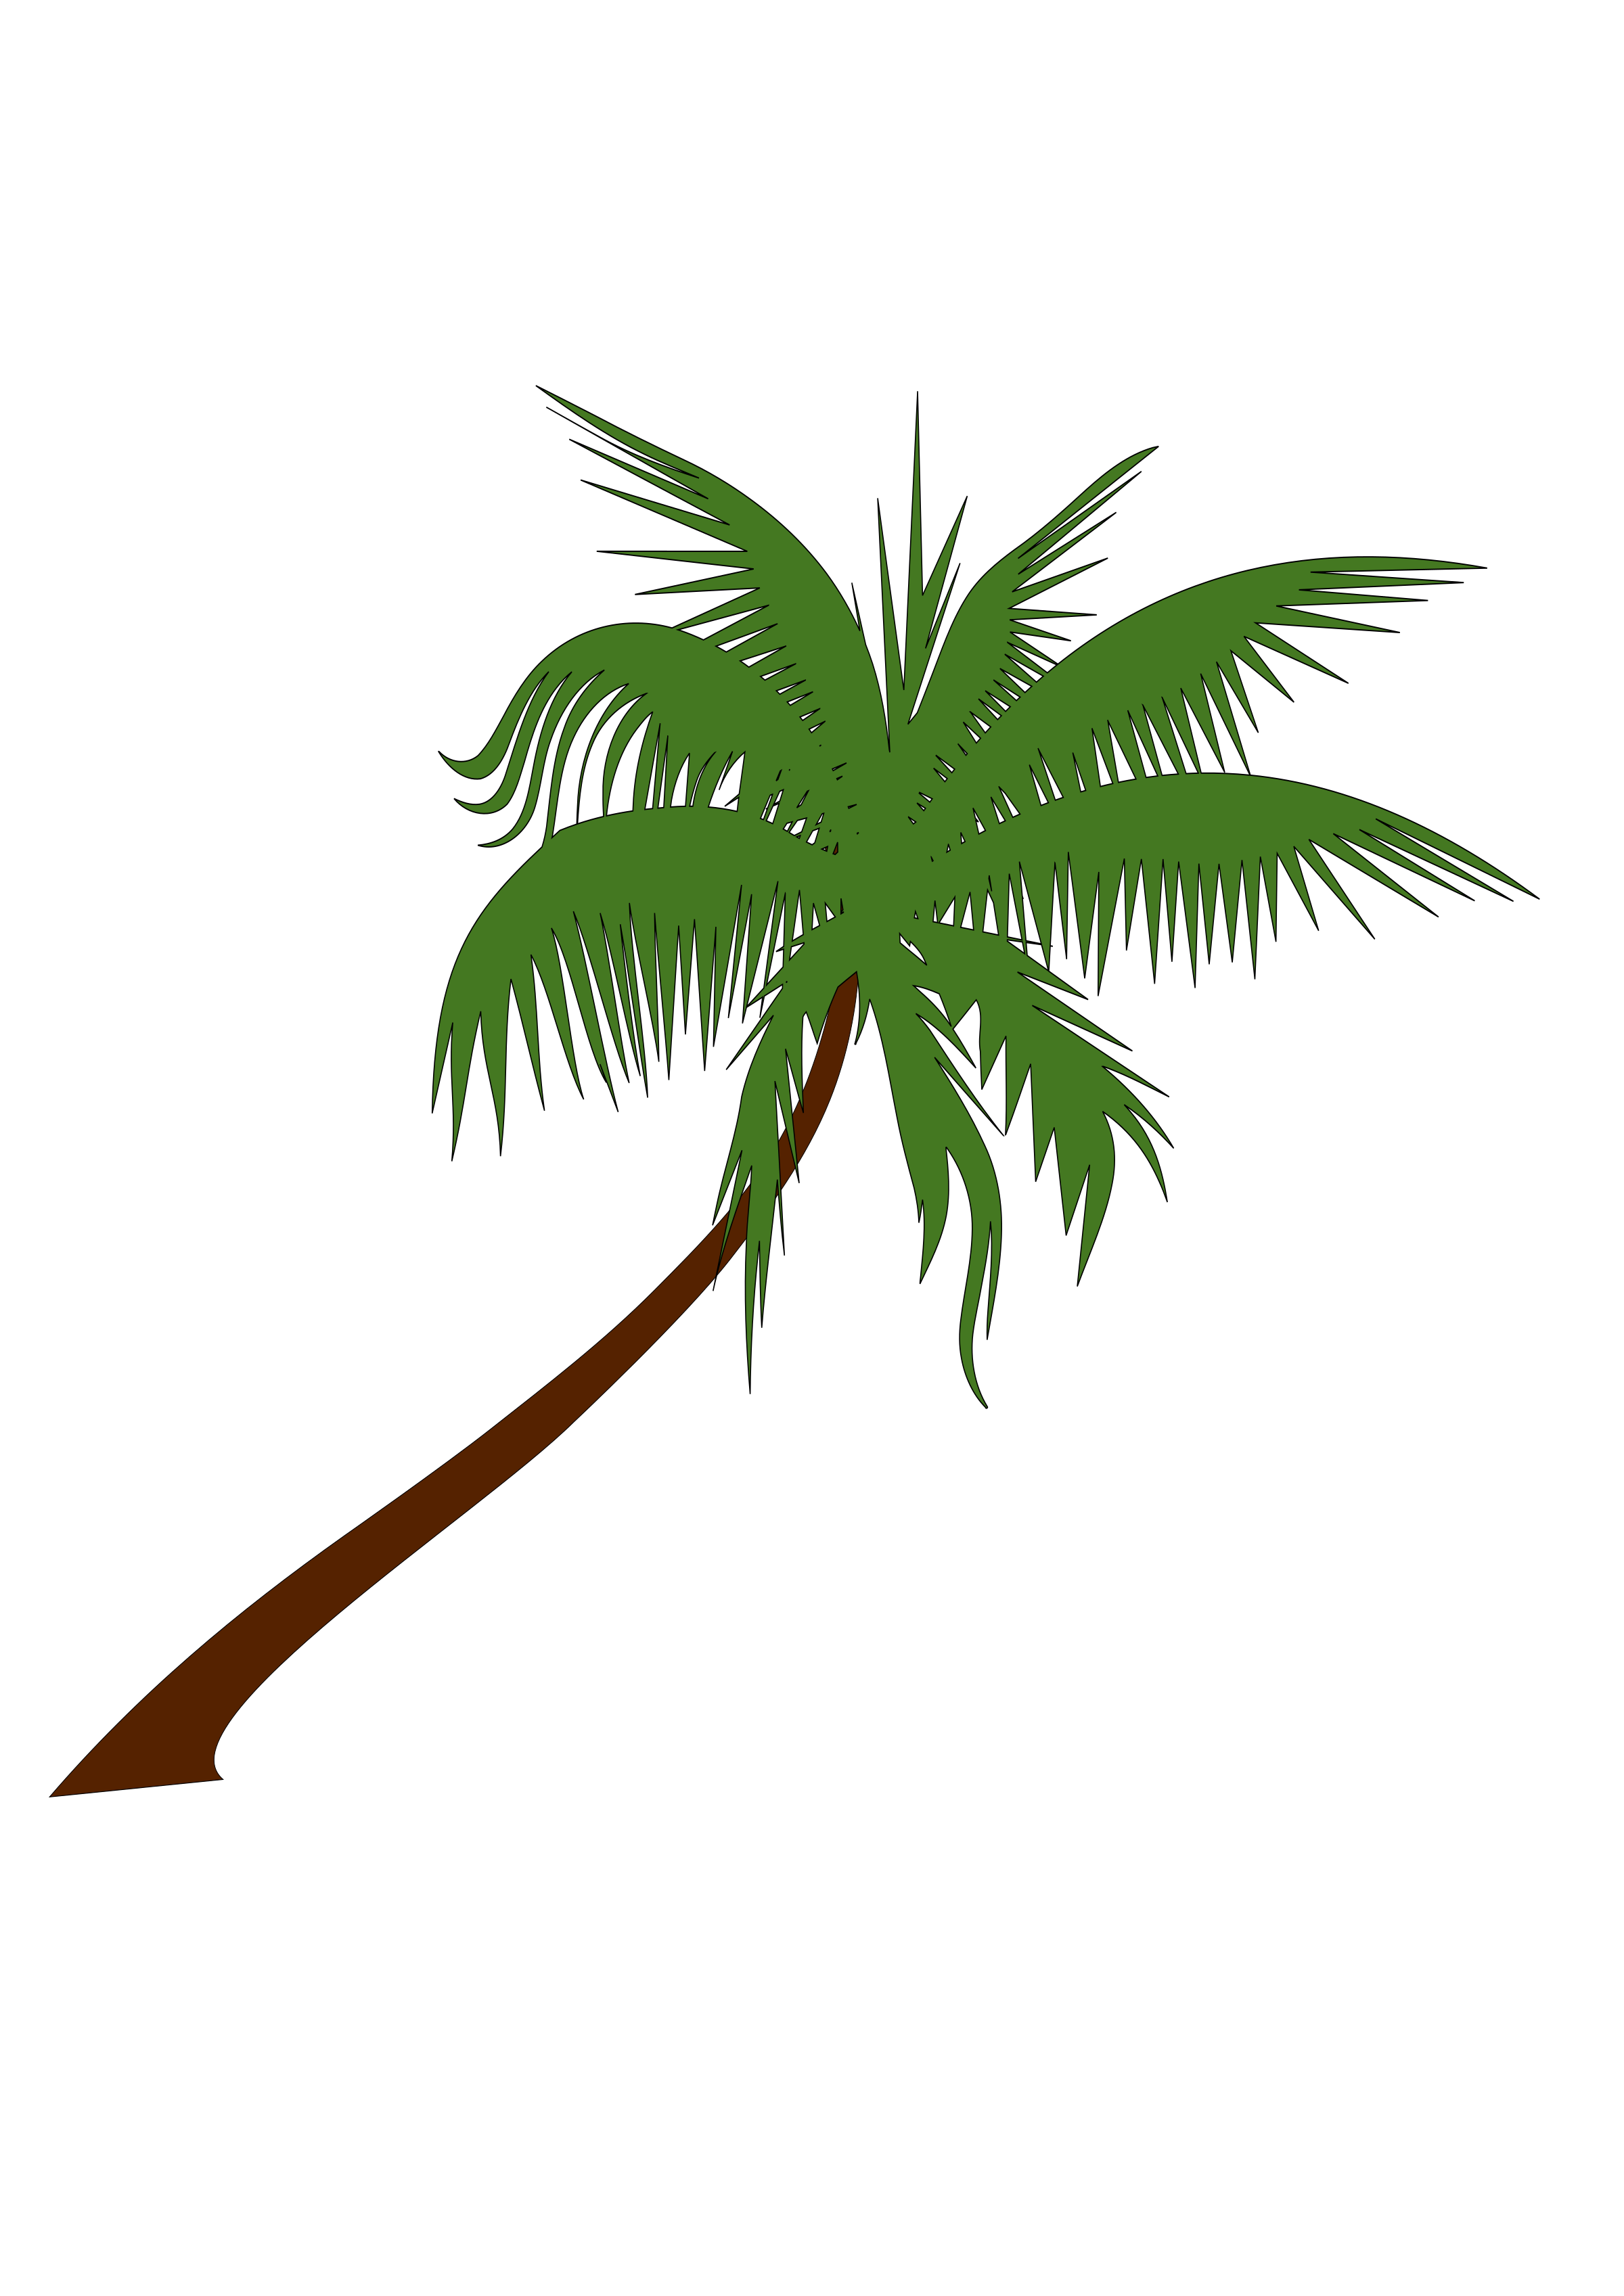 Coconut palm tree clipart jpg freeuse library Coconut Palm Tree Drawing at GetDrawings.com | Free for personal use ... jpg freeuse library